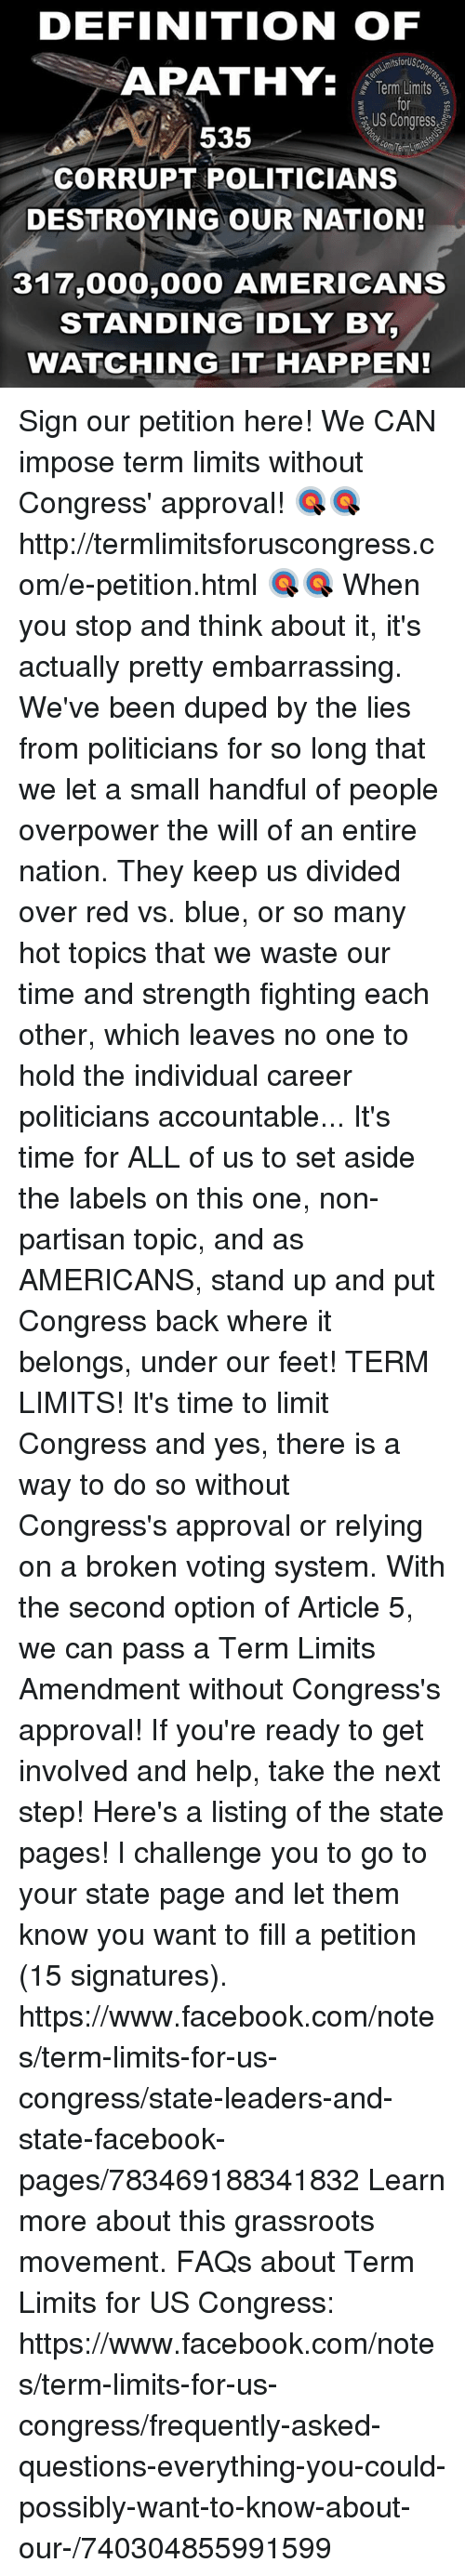 Definitely, Facebook, and Memes: DEFINITION OF  itsforUSC  APATHY.  Term Limits  US Congress  535  CORRUPT POLITICIANS  DESTROYING OUR NATION!  317,000  AMERICANS  STANDING IDLY BY,  WATCHING IT HAPPEN! Sign our petition here! We CAN impose term limits without Congress' approval! 🎯🎯http://termlimitsforuscongress.com/e-petition.html 🎯🎯  When you stop and think about it, it's actually pretty embarrassing.  We've been duped by the lies from politicians for so long that we let a small handful of people overpower the will of an entire nation.  They keep us divided over red vs. blue, or so many hot topics that we waste our time and strength fighting each other, which leaves no one to hold the individual career politicians accountable...  It's time for ALL of us to set aside the labels on this one, non-partisan topic, and as AMERICANS, stand up and put Congress back where it belongs, under our feet!  TERM LIMITS!  It's time to limit Congress and yes, there is a way to do so without Congress's approval or relying on a broken voting system.  With the second option of Article 5, we can pass a Term Limits Amendment without Congress's approval!  If you're ready to get involved and help, take the next step! Here's a listing of the state pages! I challenge you to go to your state page and let them know you want to fill a petition (15 signatures). https://www.facebook.com/notes/term-limits-for-us-congress/state-leaders-and-state-facebook-pages/783469188341832  Learn more about this grassroots movement. FAQs about Term Limits for US Congress: https://www.facebook.com/notes/term-limits-for-us-congress/frequently-asked-questions-everything-you-could-possibly-want-to-know-about-our-/740304855991599